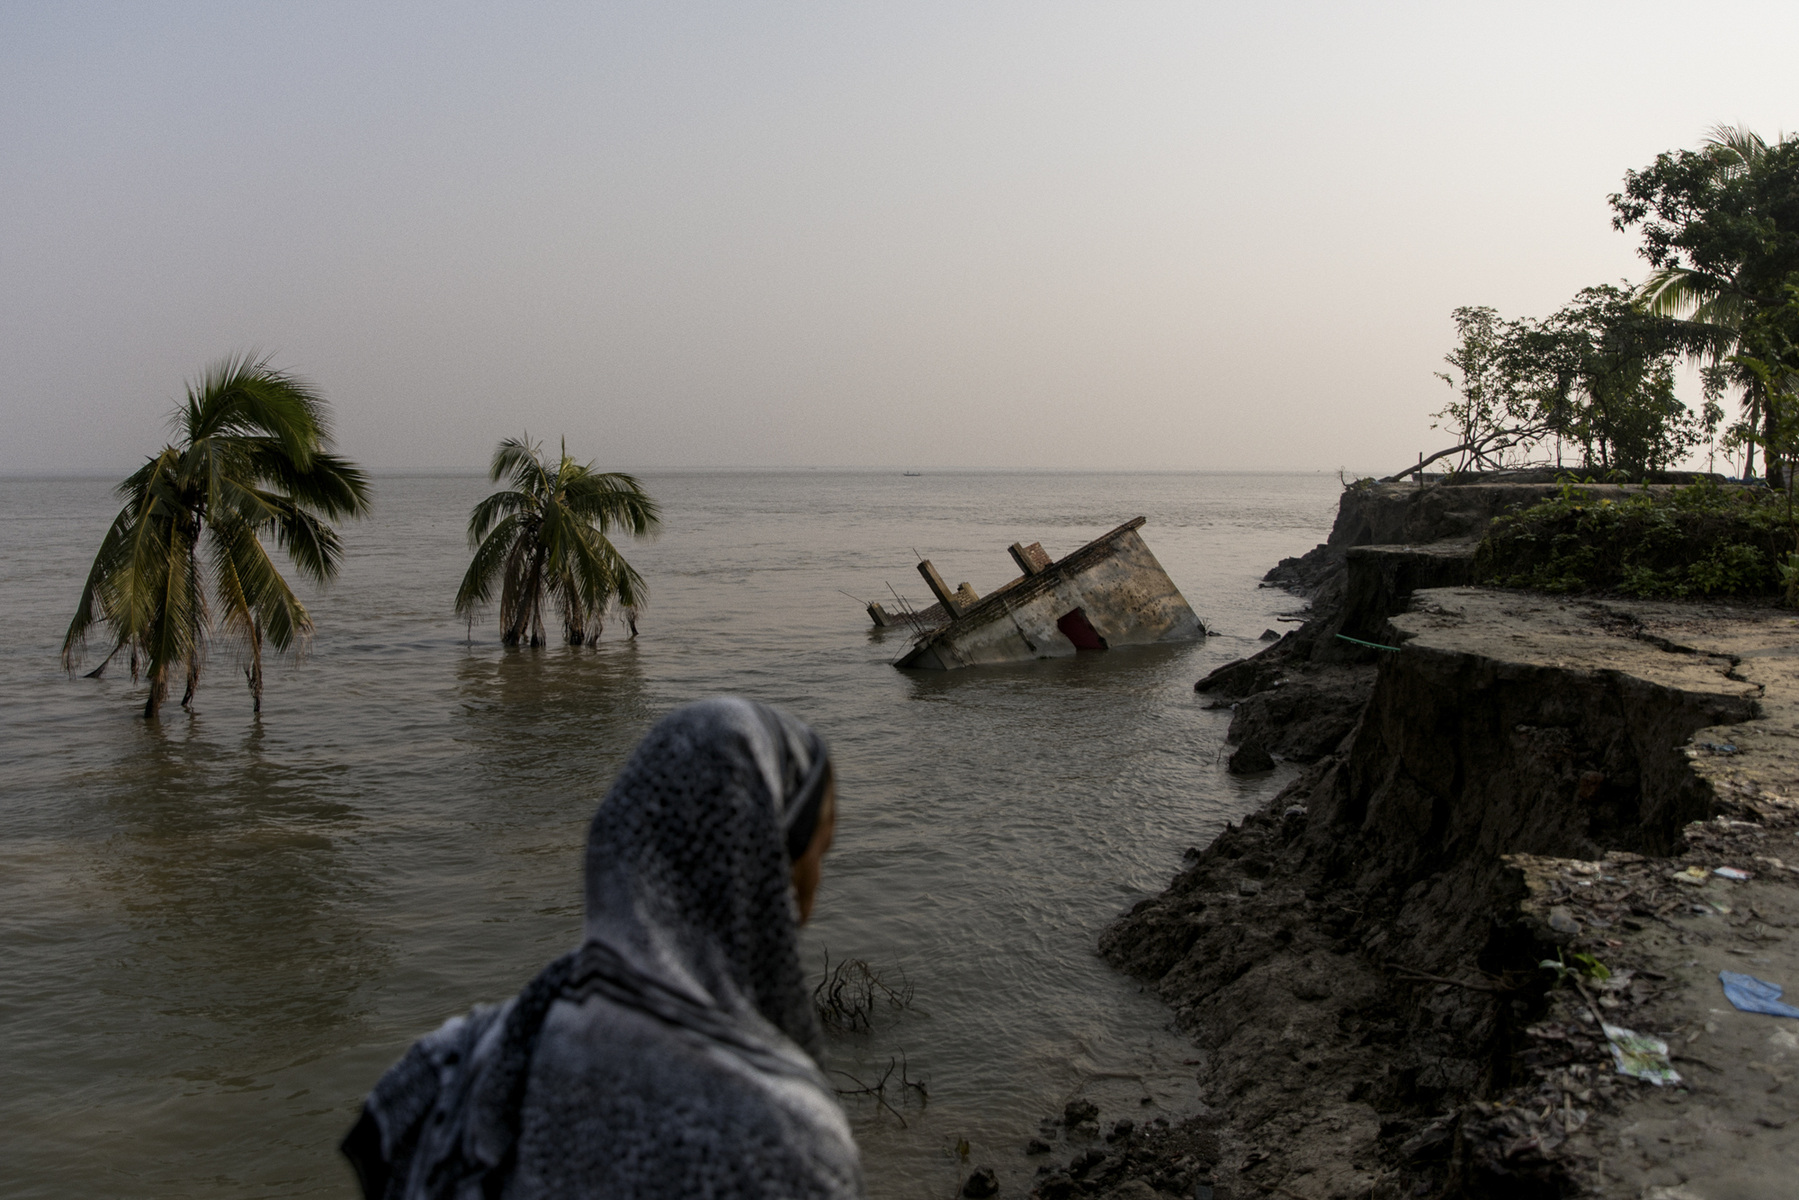 Adrienne Surprenant - 18/10/2018, Naria, Bangladesh — Bangladesh is the country in the world that is most impacted by climate change. The Prime Minister estimates that the country will struggle with 30 million climate migrants by 2050. In 2018, 2km2 of land disappeared in two months in the Padma river, leaving 4200 to 5000 homeless as of the September 15,2018, according to an ACAPS briefing note. Two health clinics and parts of a bazaar have also been destroyed because of the flooding. In the past seven years, 13 km2 of land fell into the Padma River. In the past seven years, 13km2 of land fell into this river, the biggest channel of the Ganges.